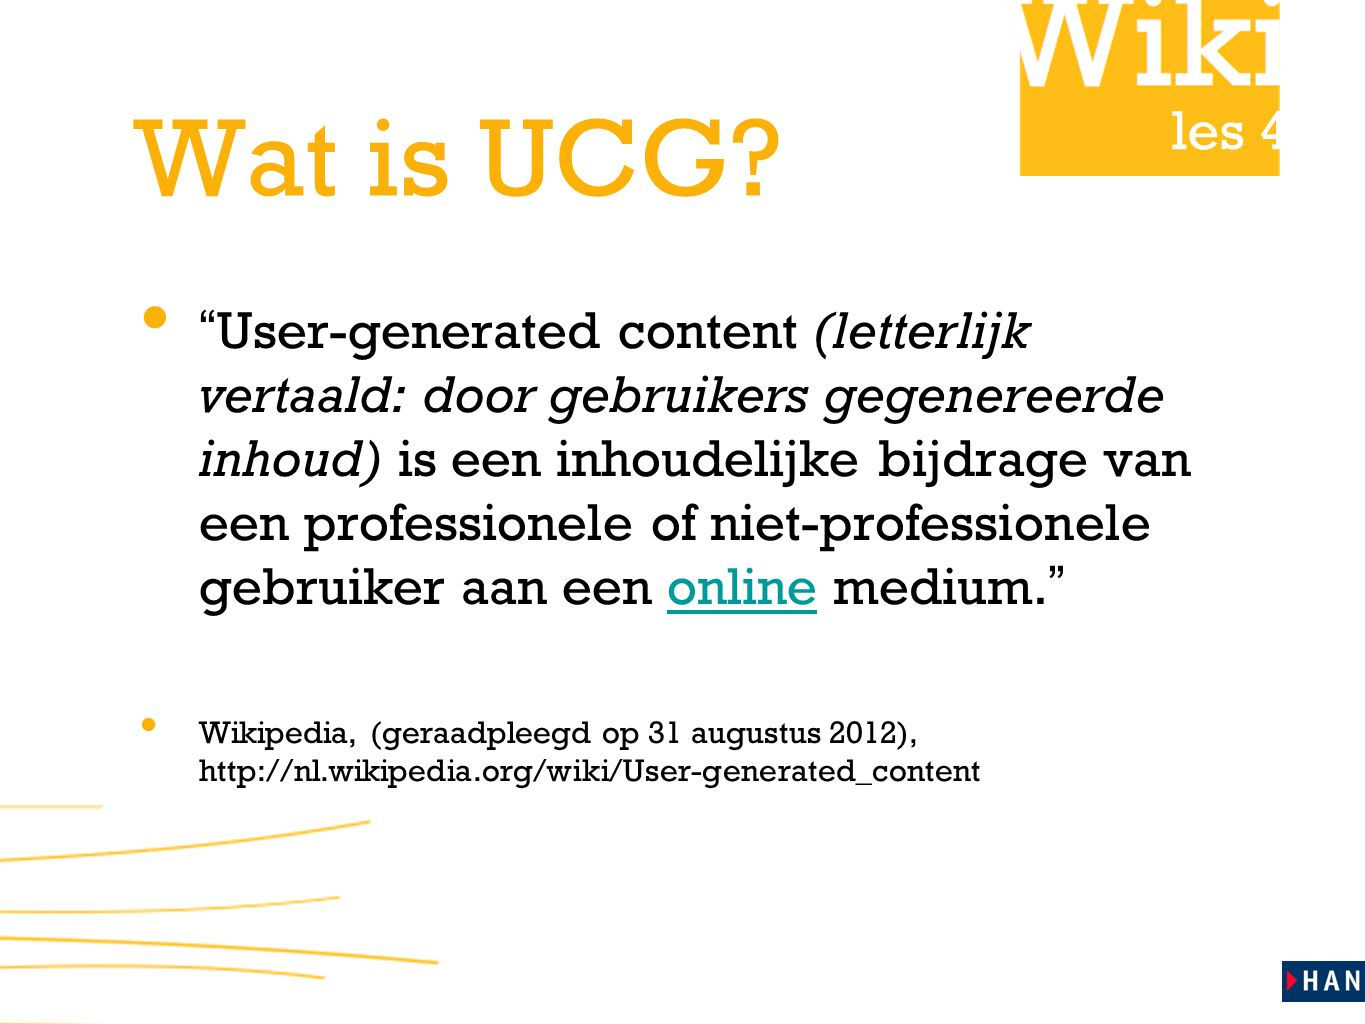 Wat is UCG